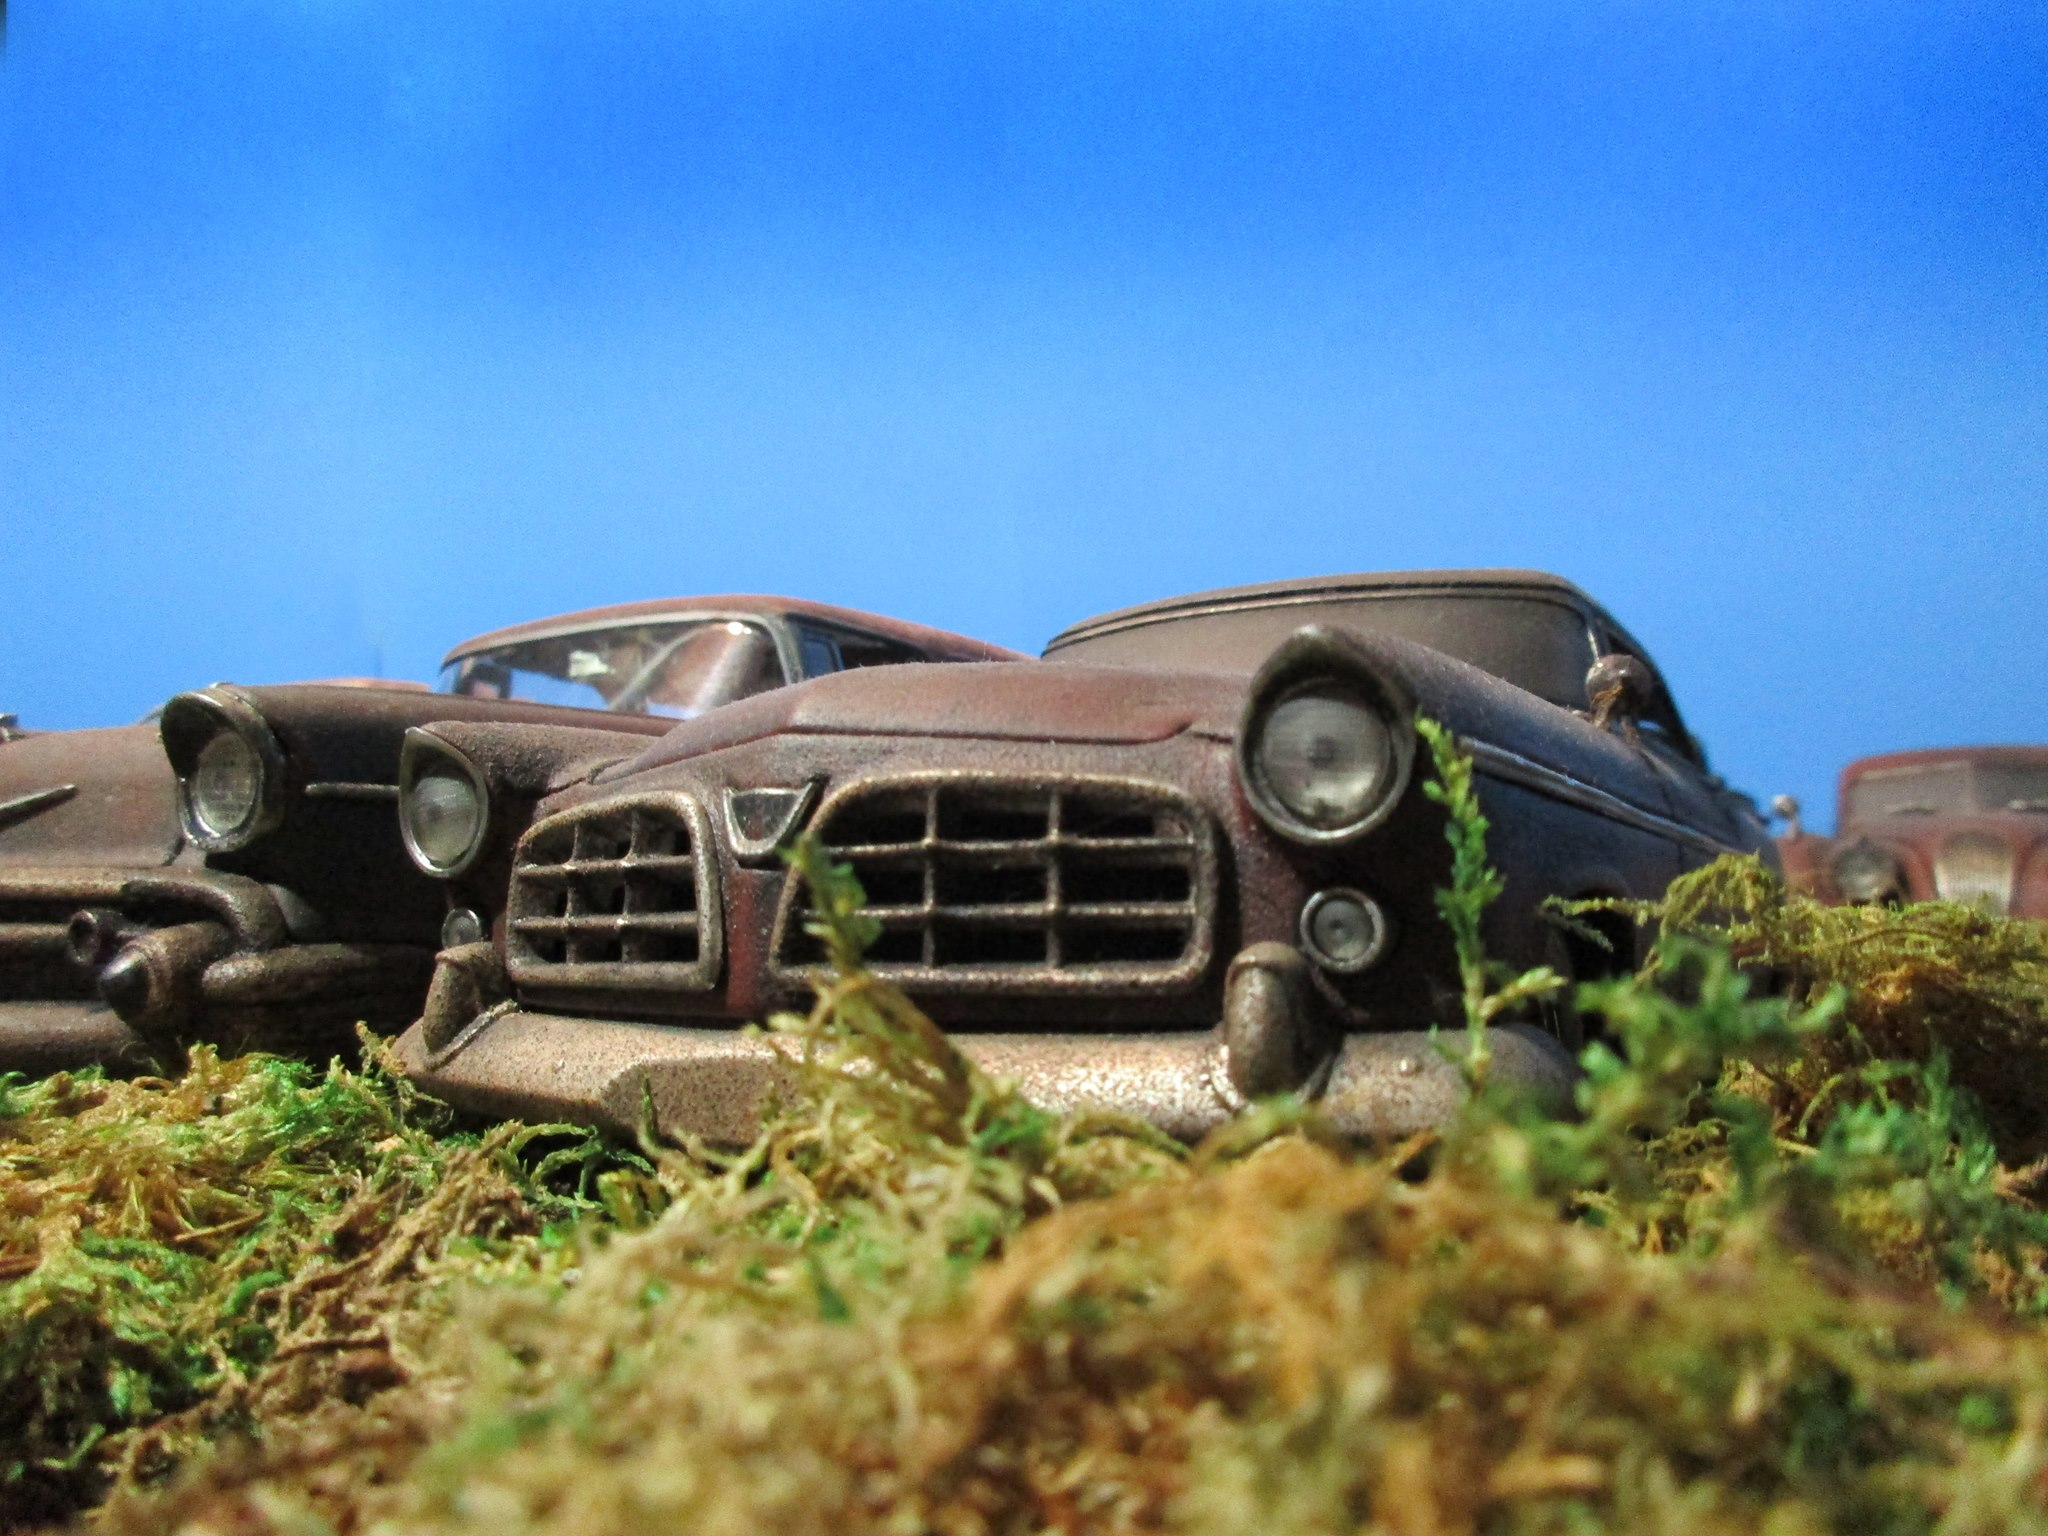 Toasted-Autos-Weathered-Die-Cast-Cars-10